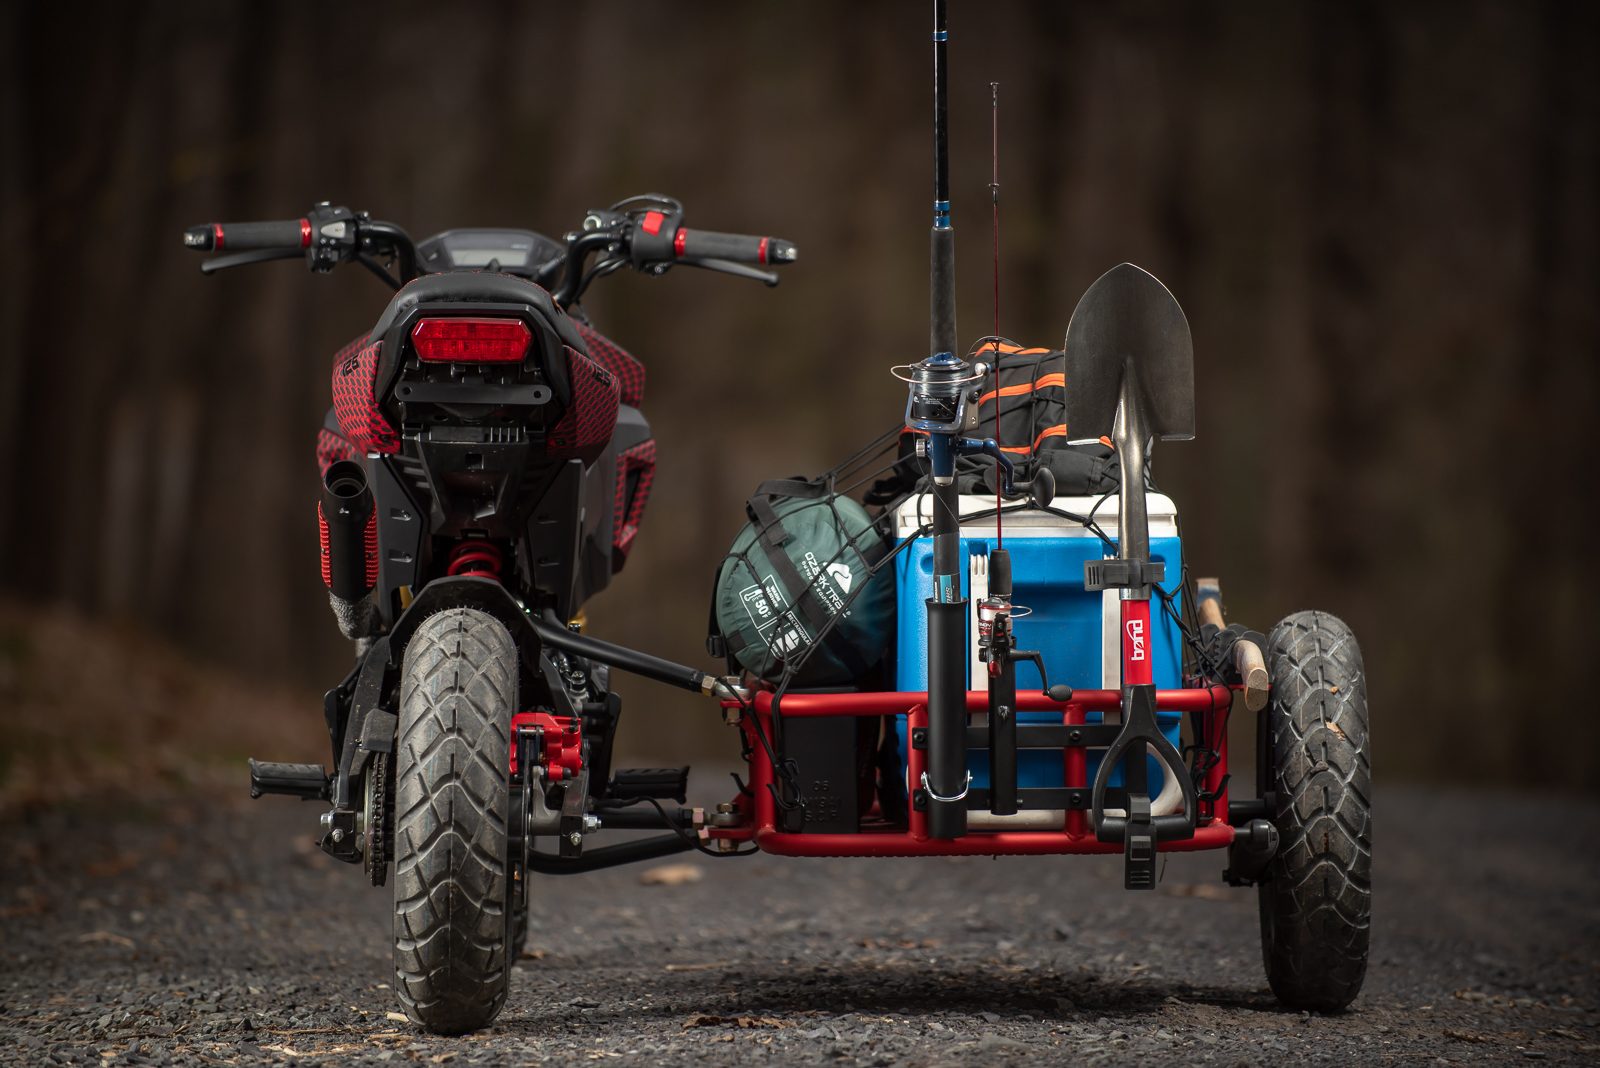 Grom Utility Sidecar motorcycle camping